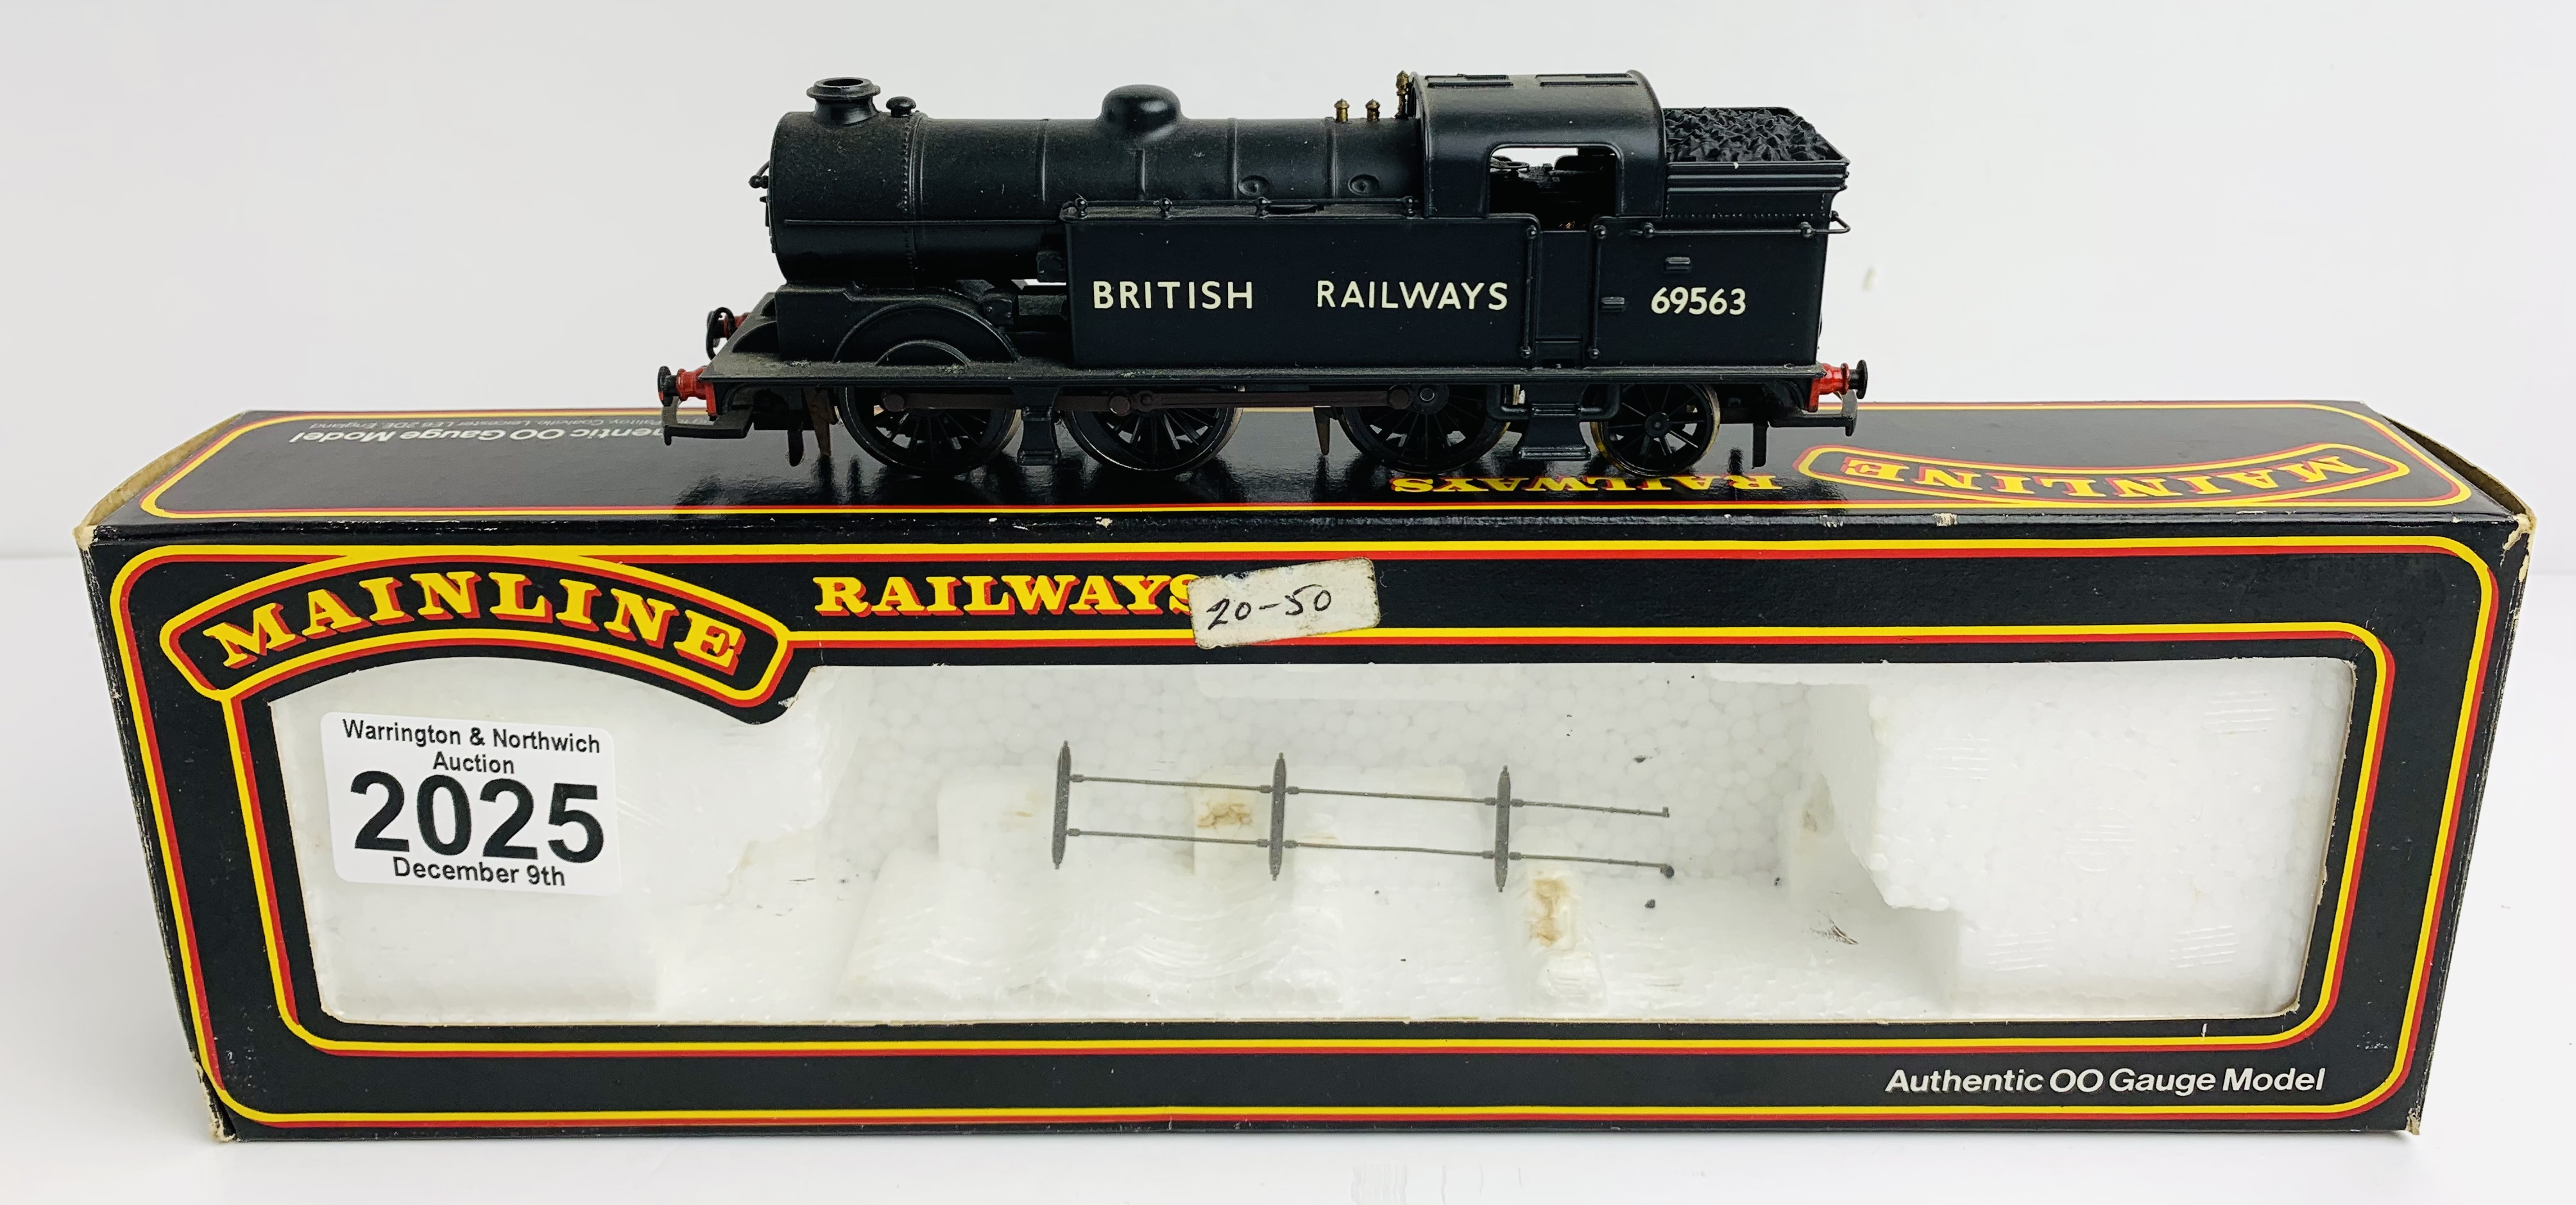 Mainline 54155 N2 Class 0-6-2T BR Black Livery 69563 - Boxed P&P Group 1 (£14+VAT for the first